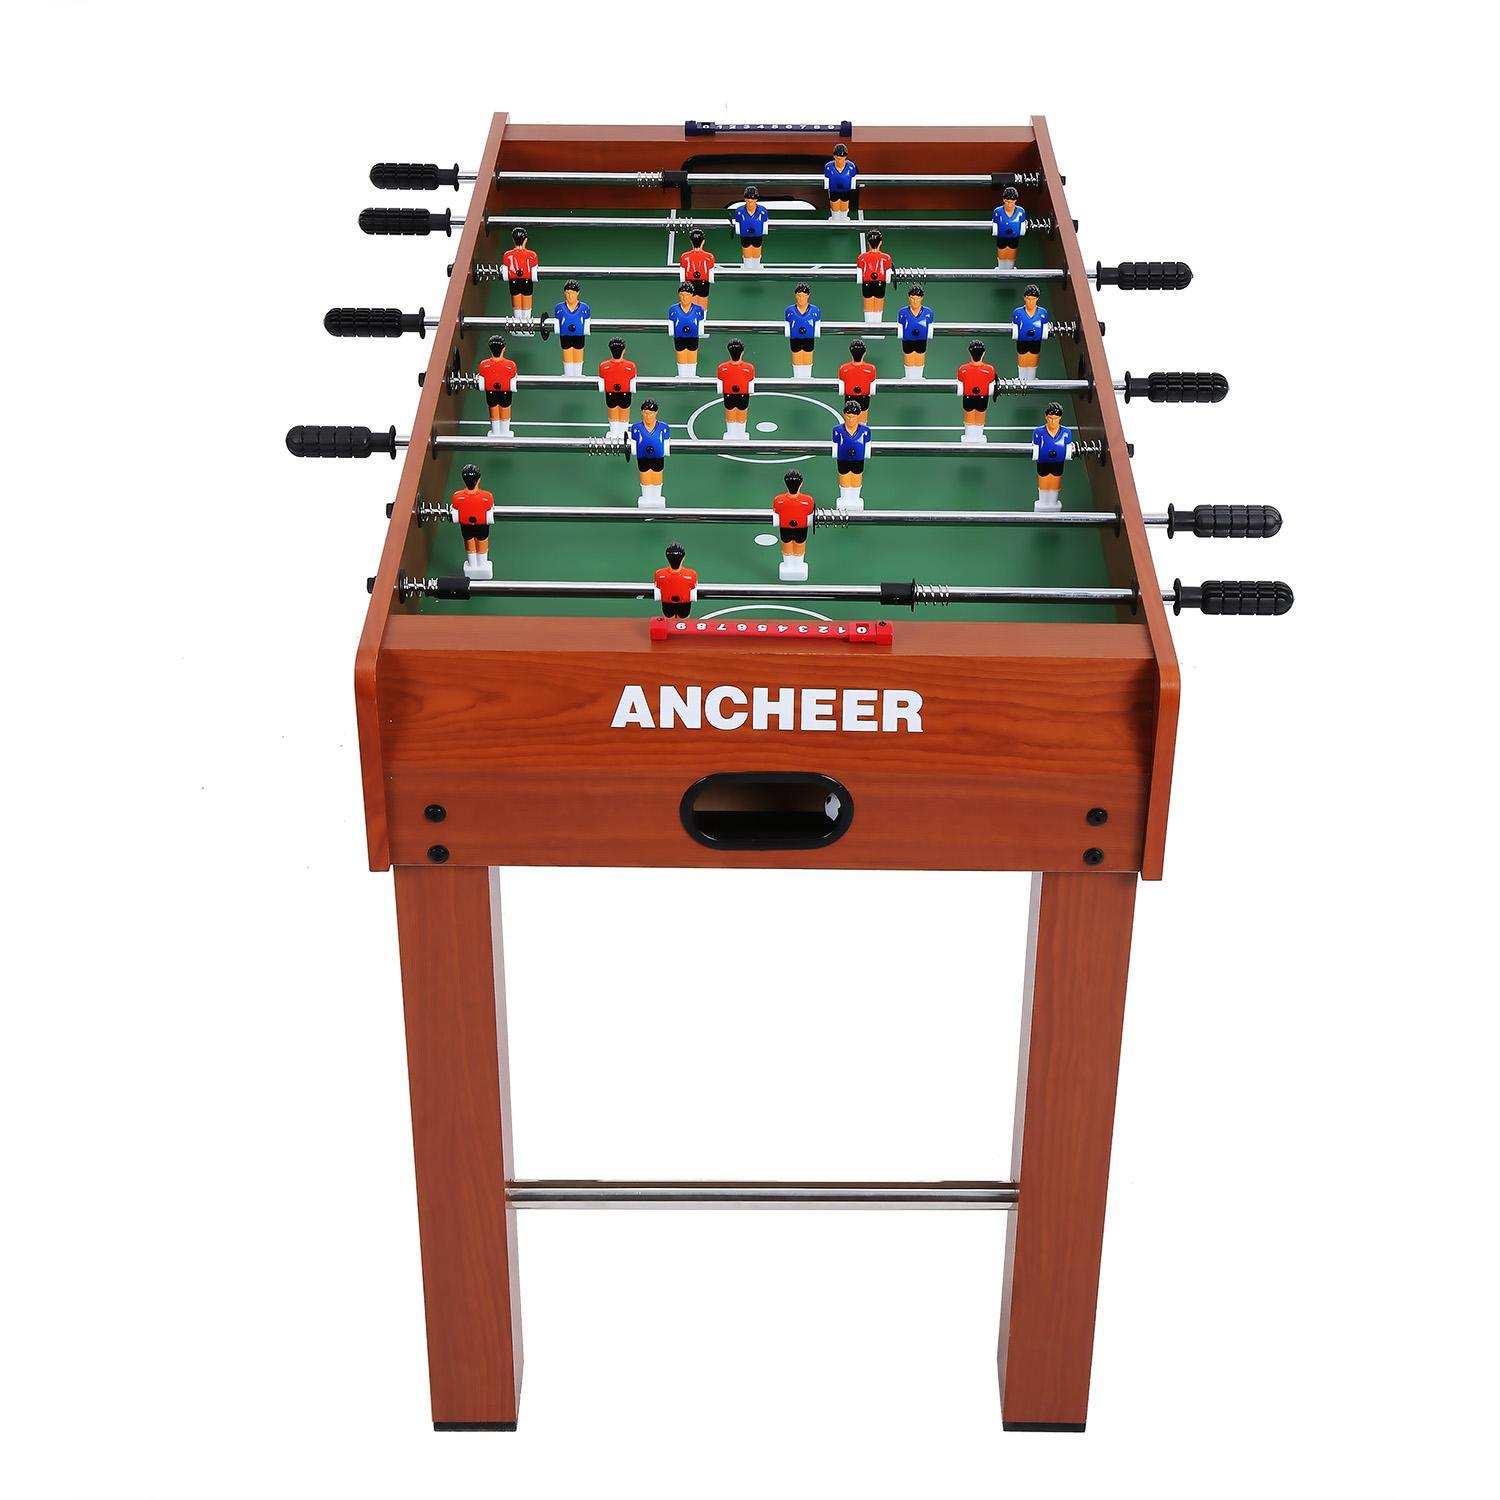 Competition Sized Foosball Table Soccer Arcade Game Room Football Sports DEAML by